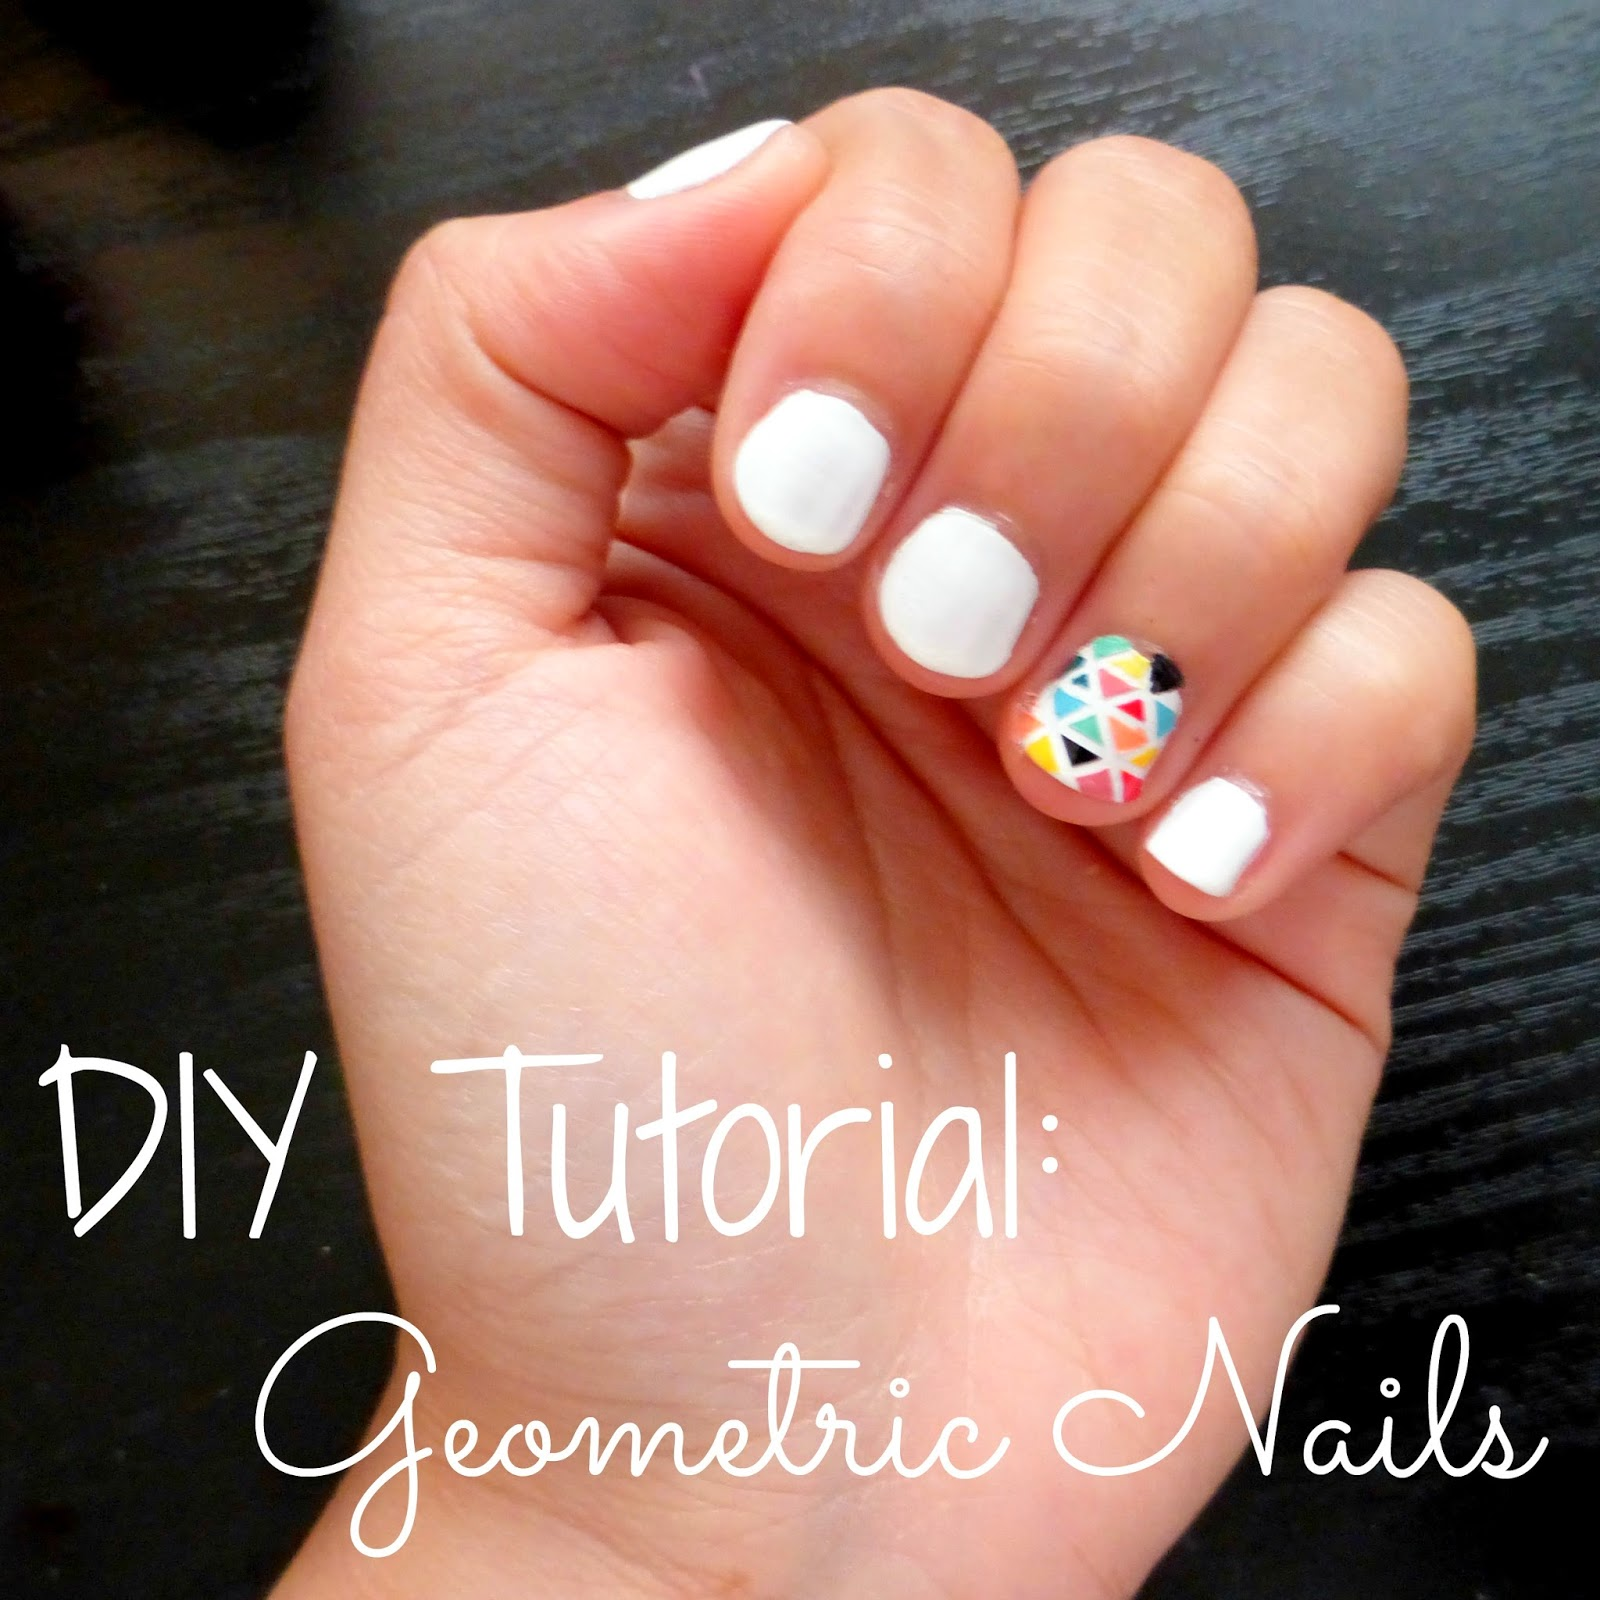 Diy geometric nails la vie en may petite fashionista beauty this nail design should only take 5 minutes to do without the drying time i only did one nail because i thought itd take too much time to do the entire prinsesfo Image collections